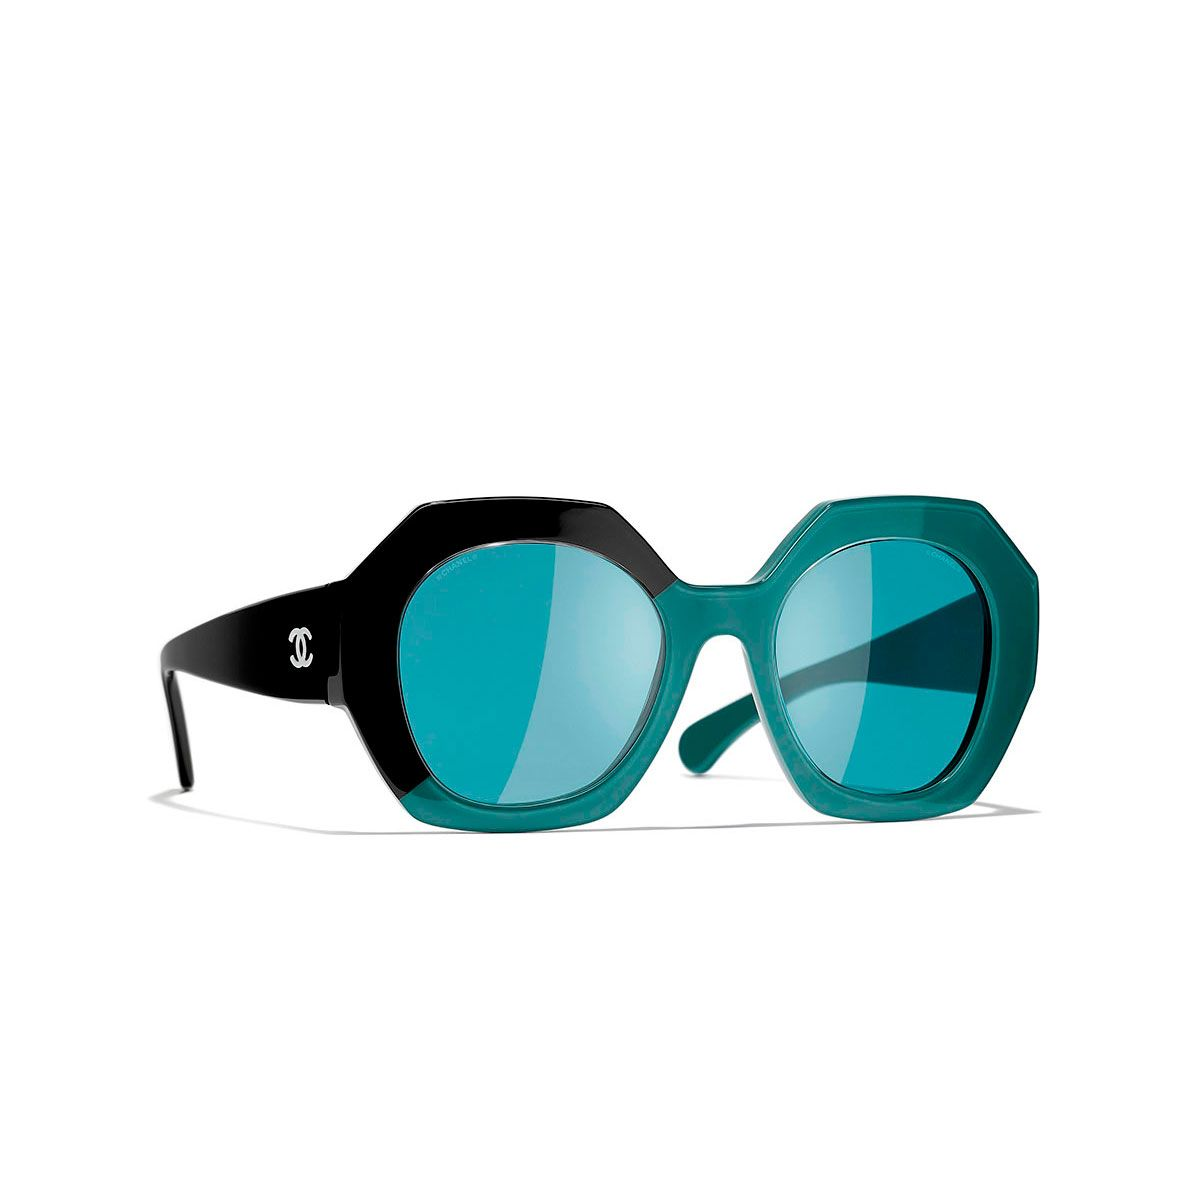 Round Sunglasses 315 Sunglasses